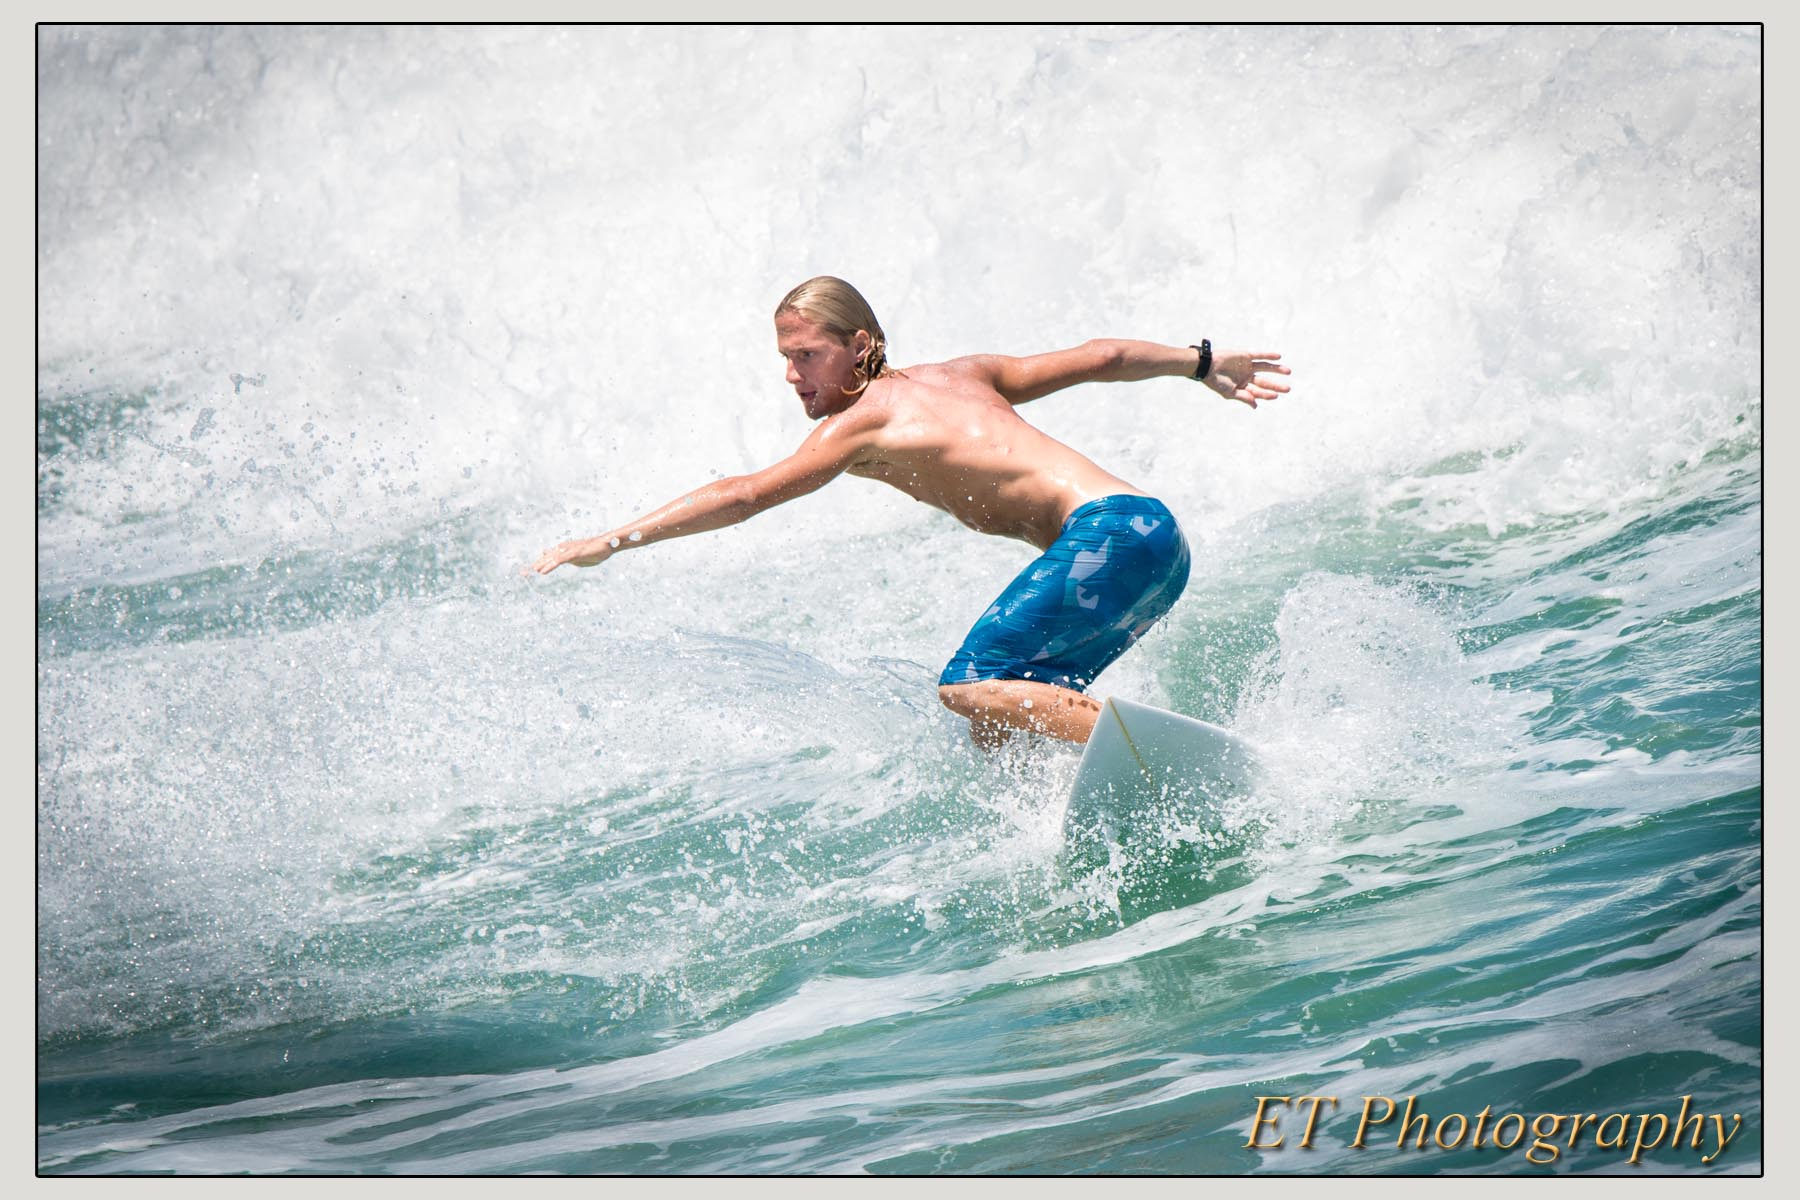 I never photographed someone surfing before but couldn't resist while watching a group of teens hitting the waves.